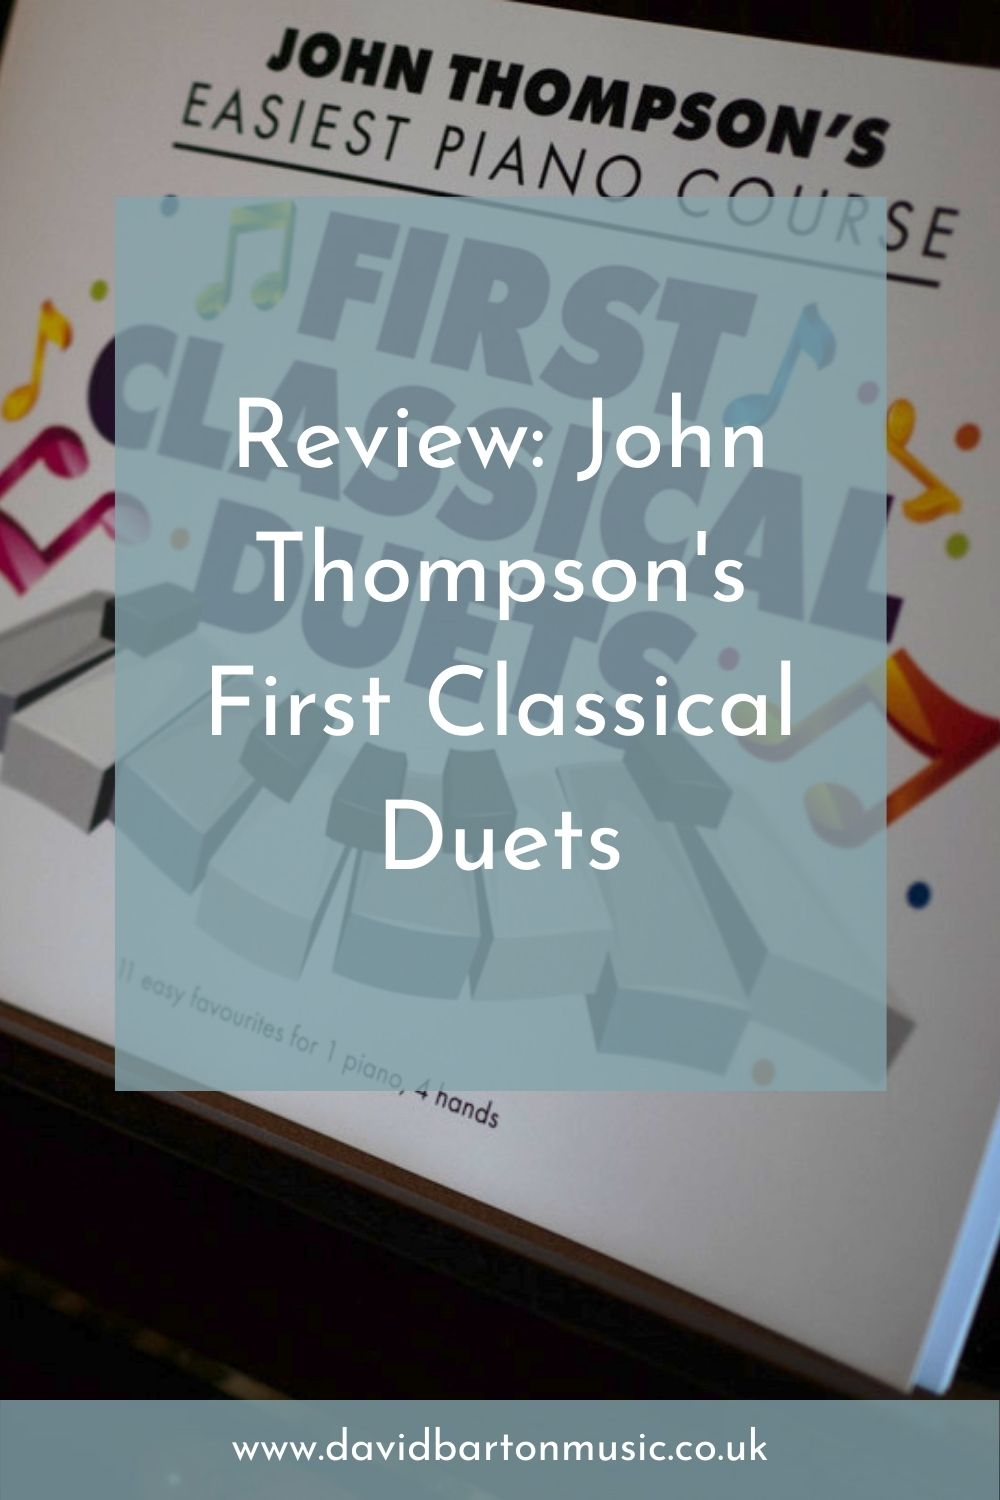 Review: John Thompson's First Classical Duets - Pinterest Graphic